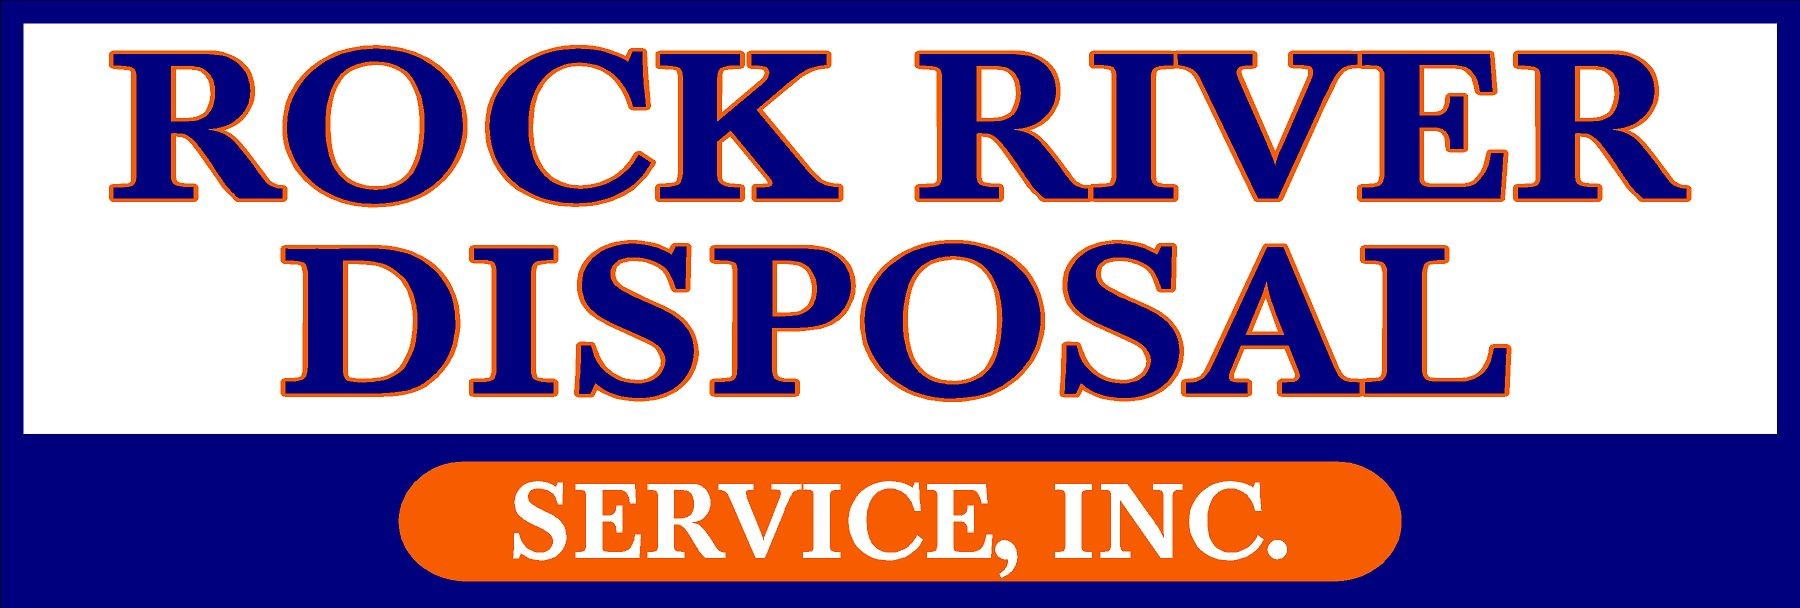 Rock River Disposal Services